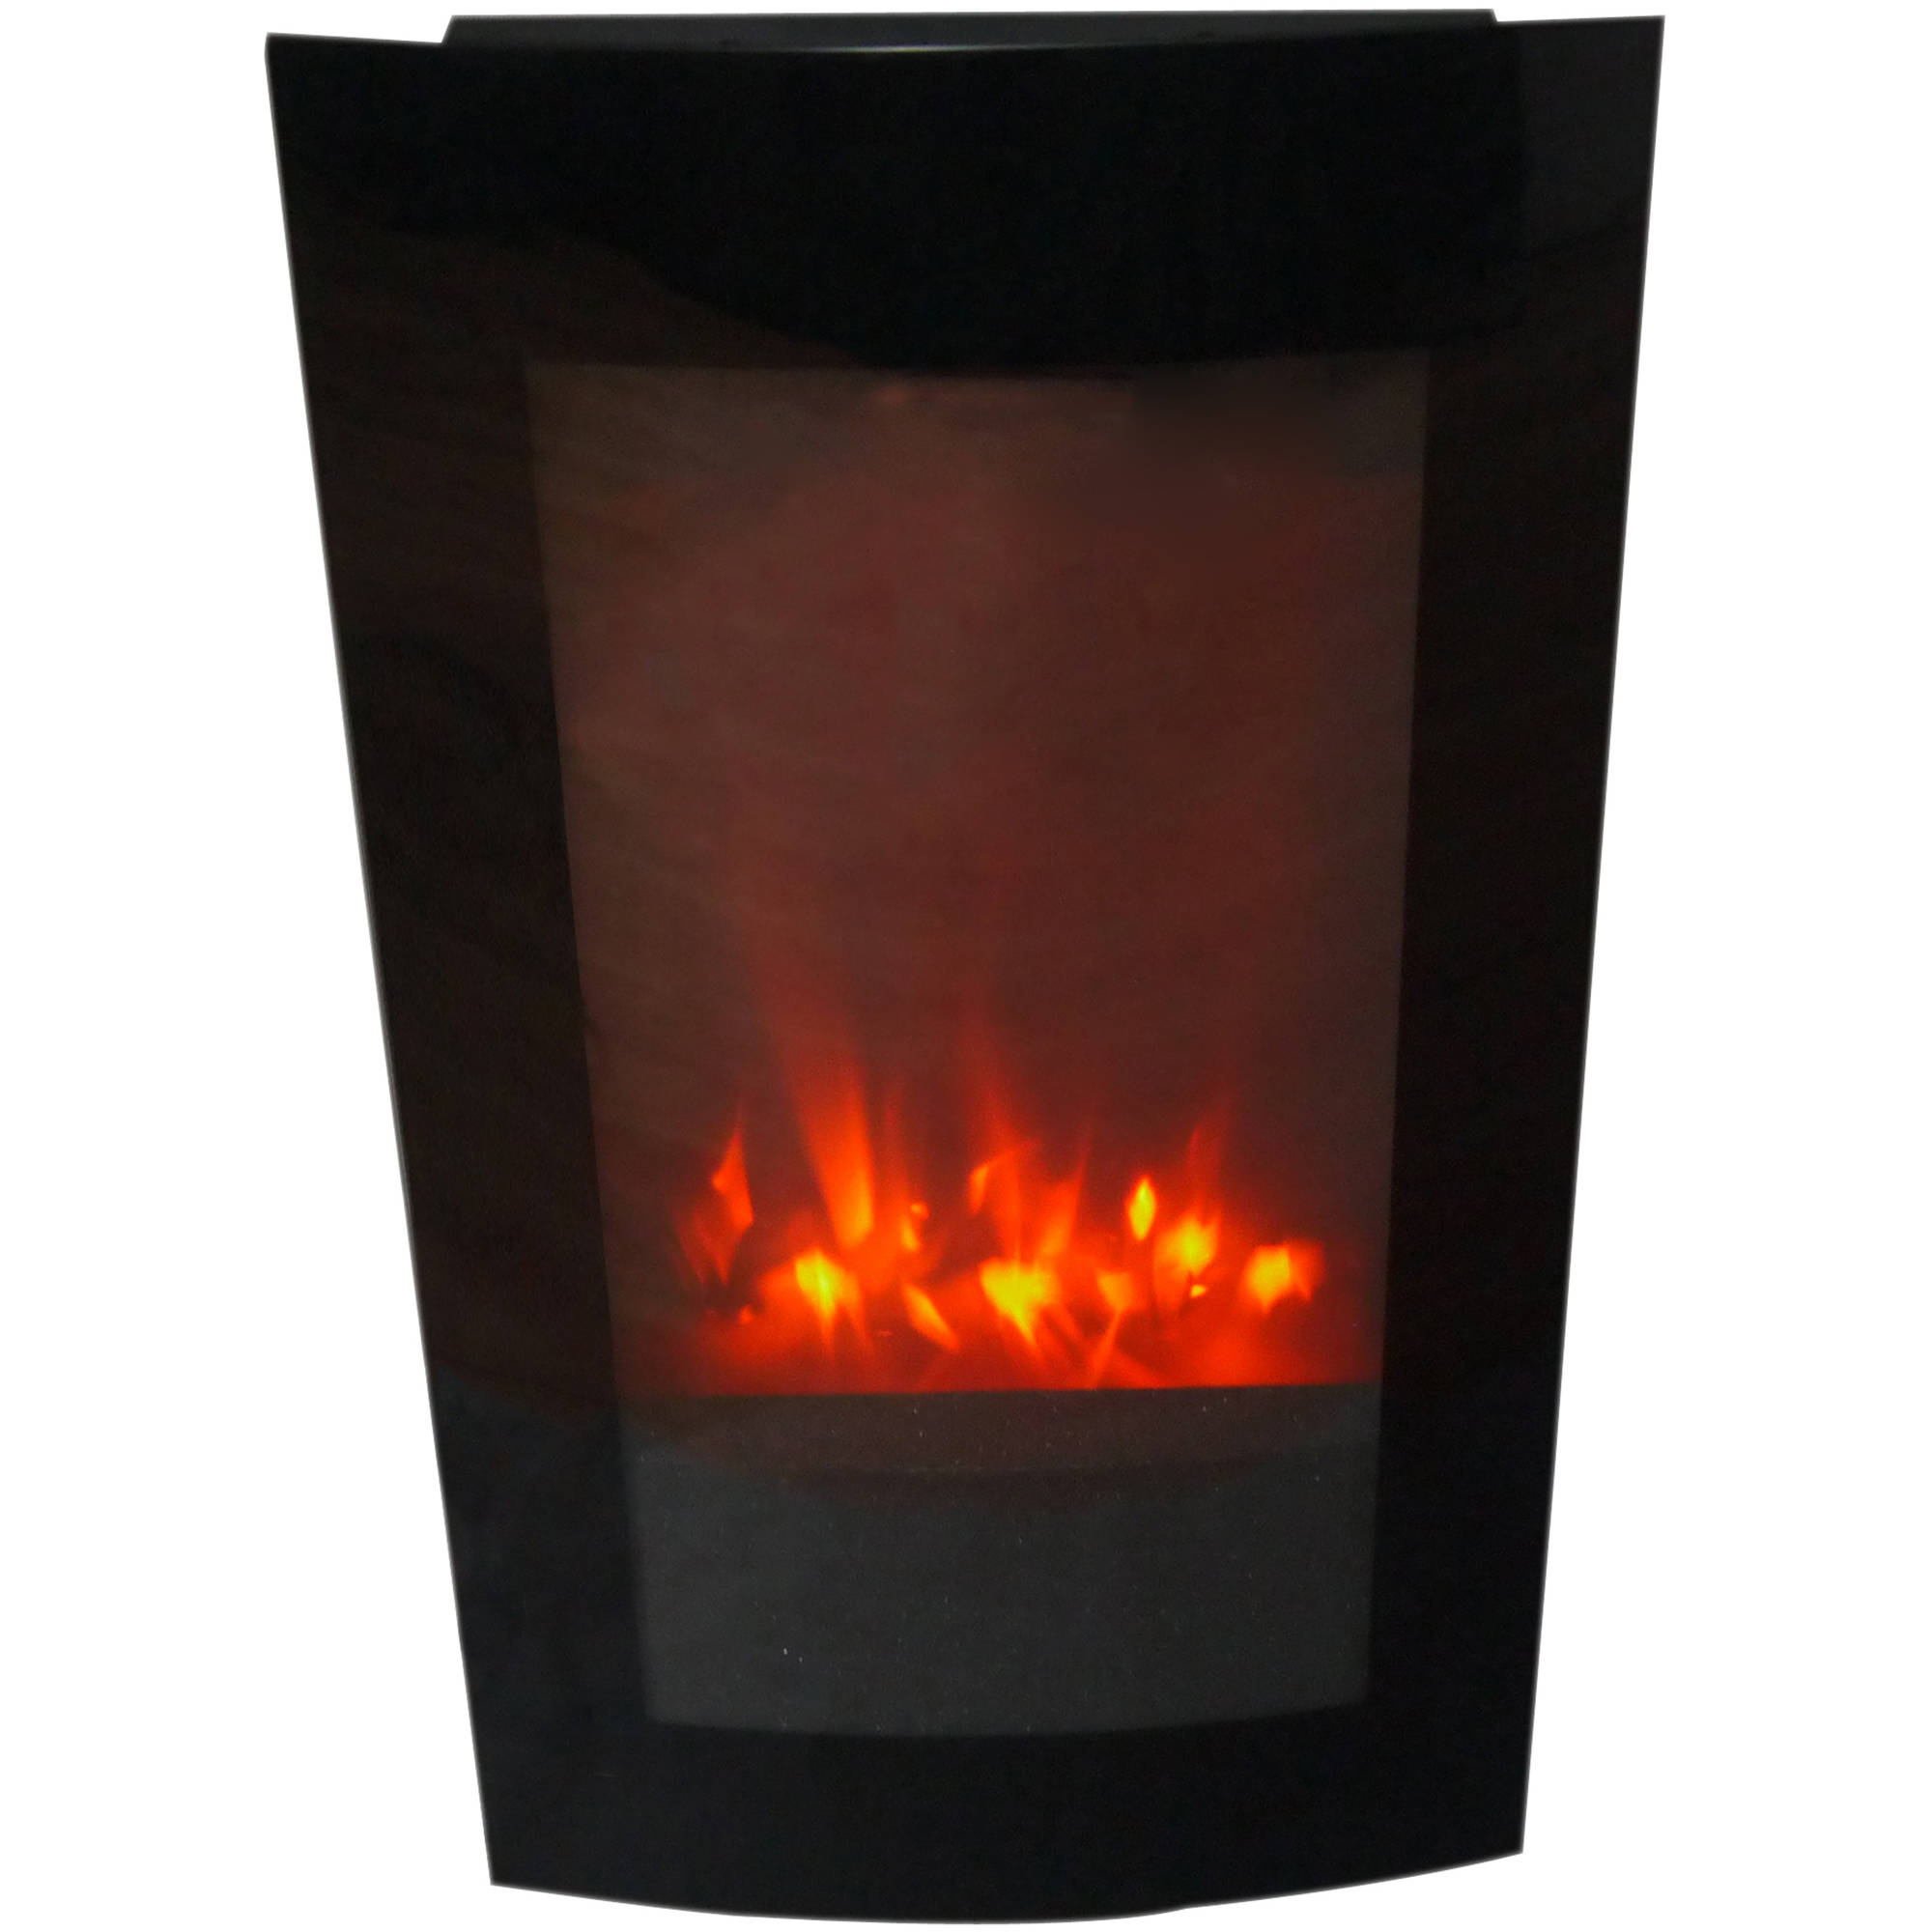 18 Vertical Wallmount Electric Space Heater Fireplace